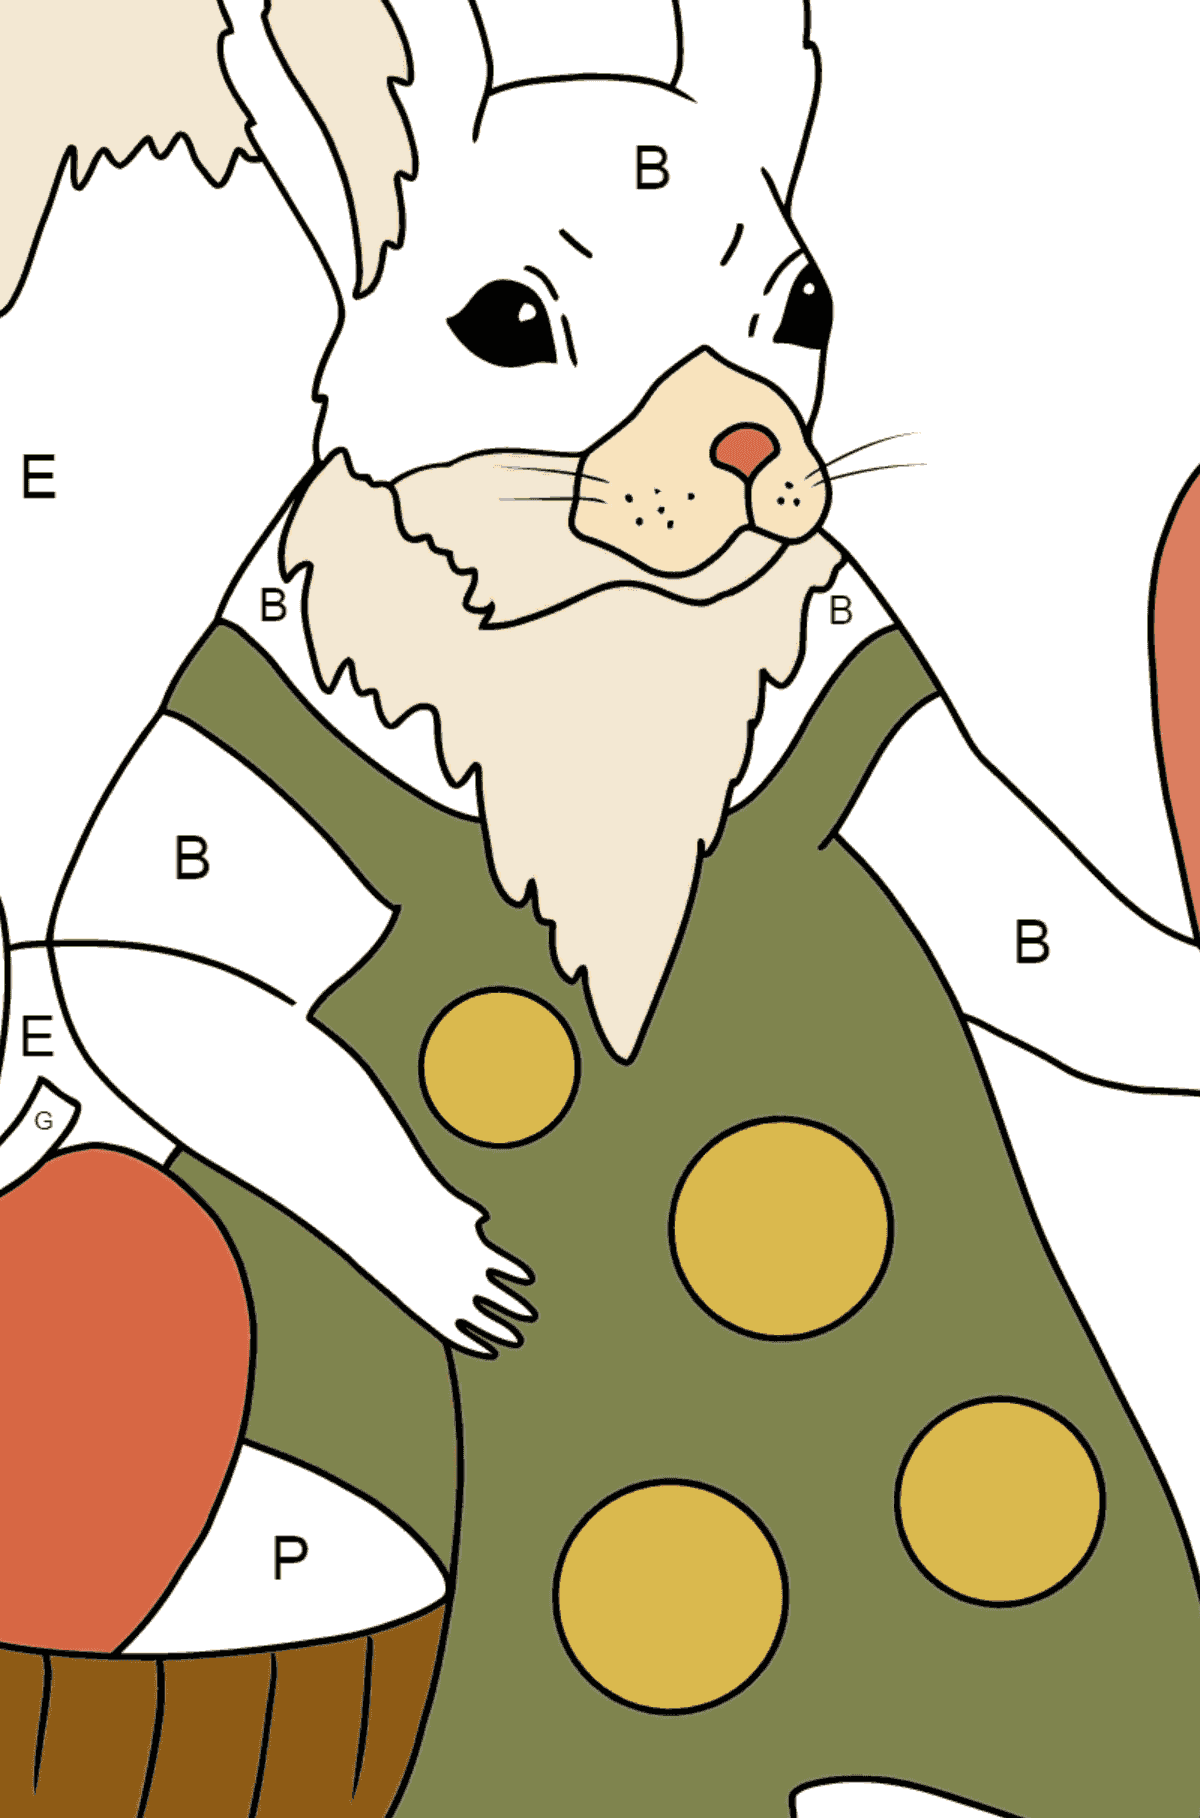 Summer Coloring Page - Squirrels have Collected Apples for Winter for Kids  - Color by Letters